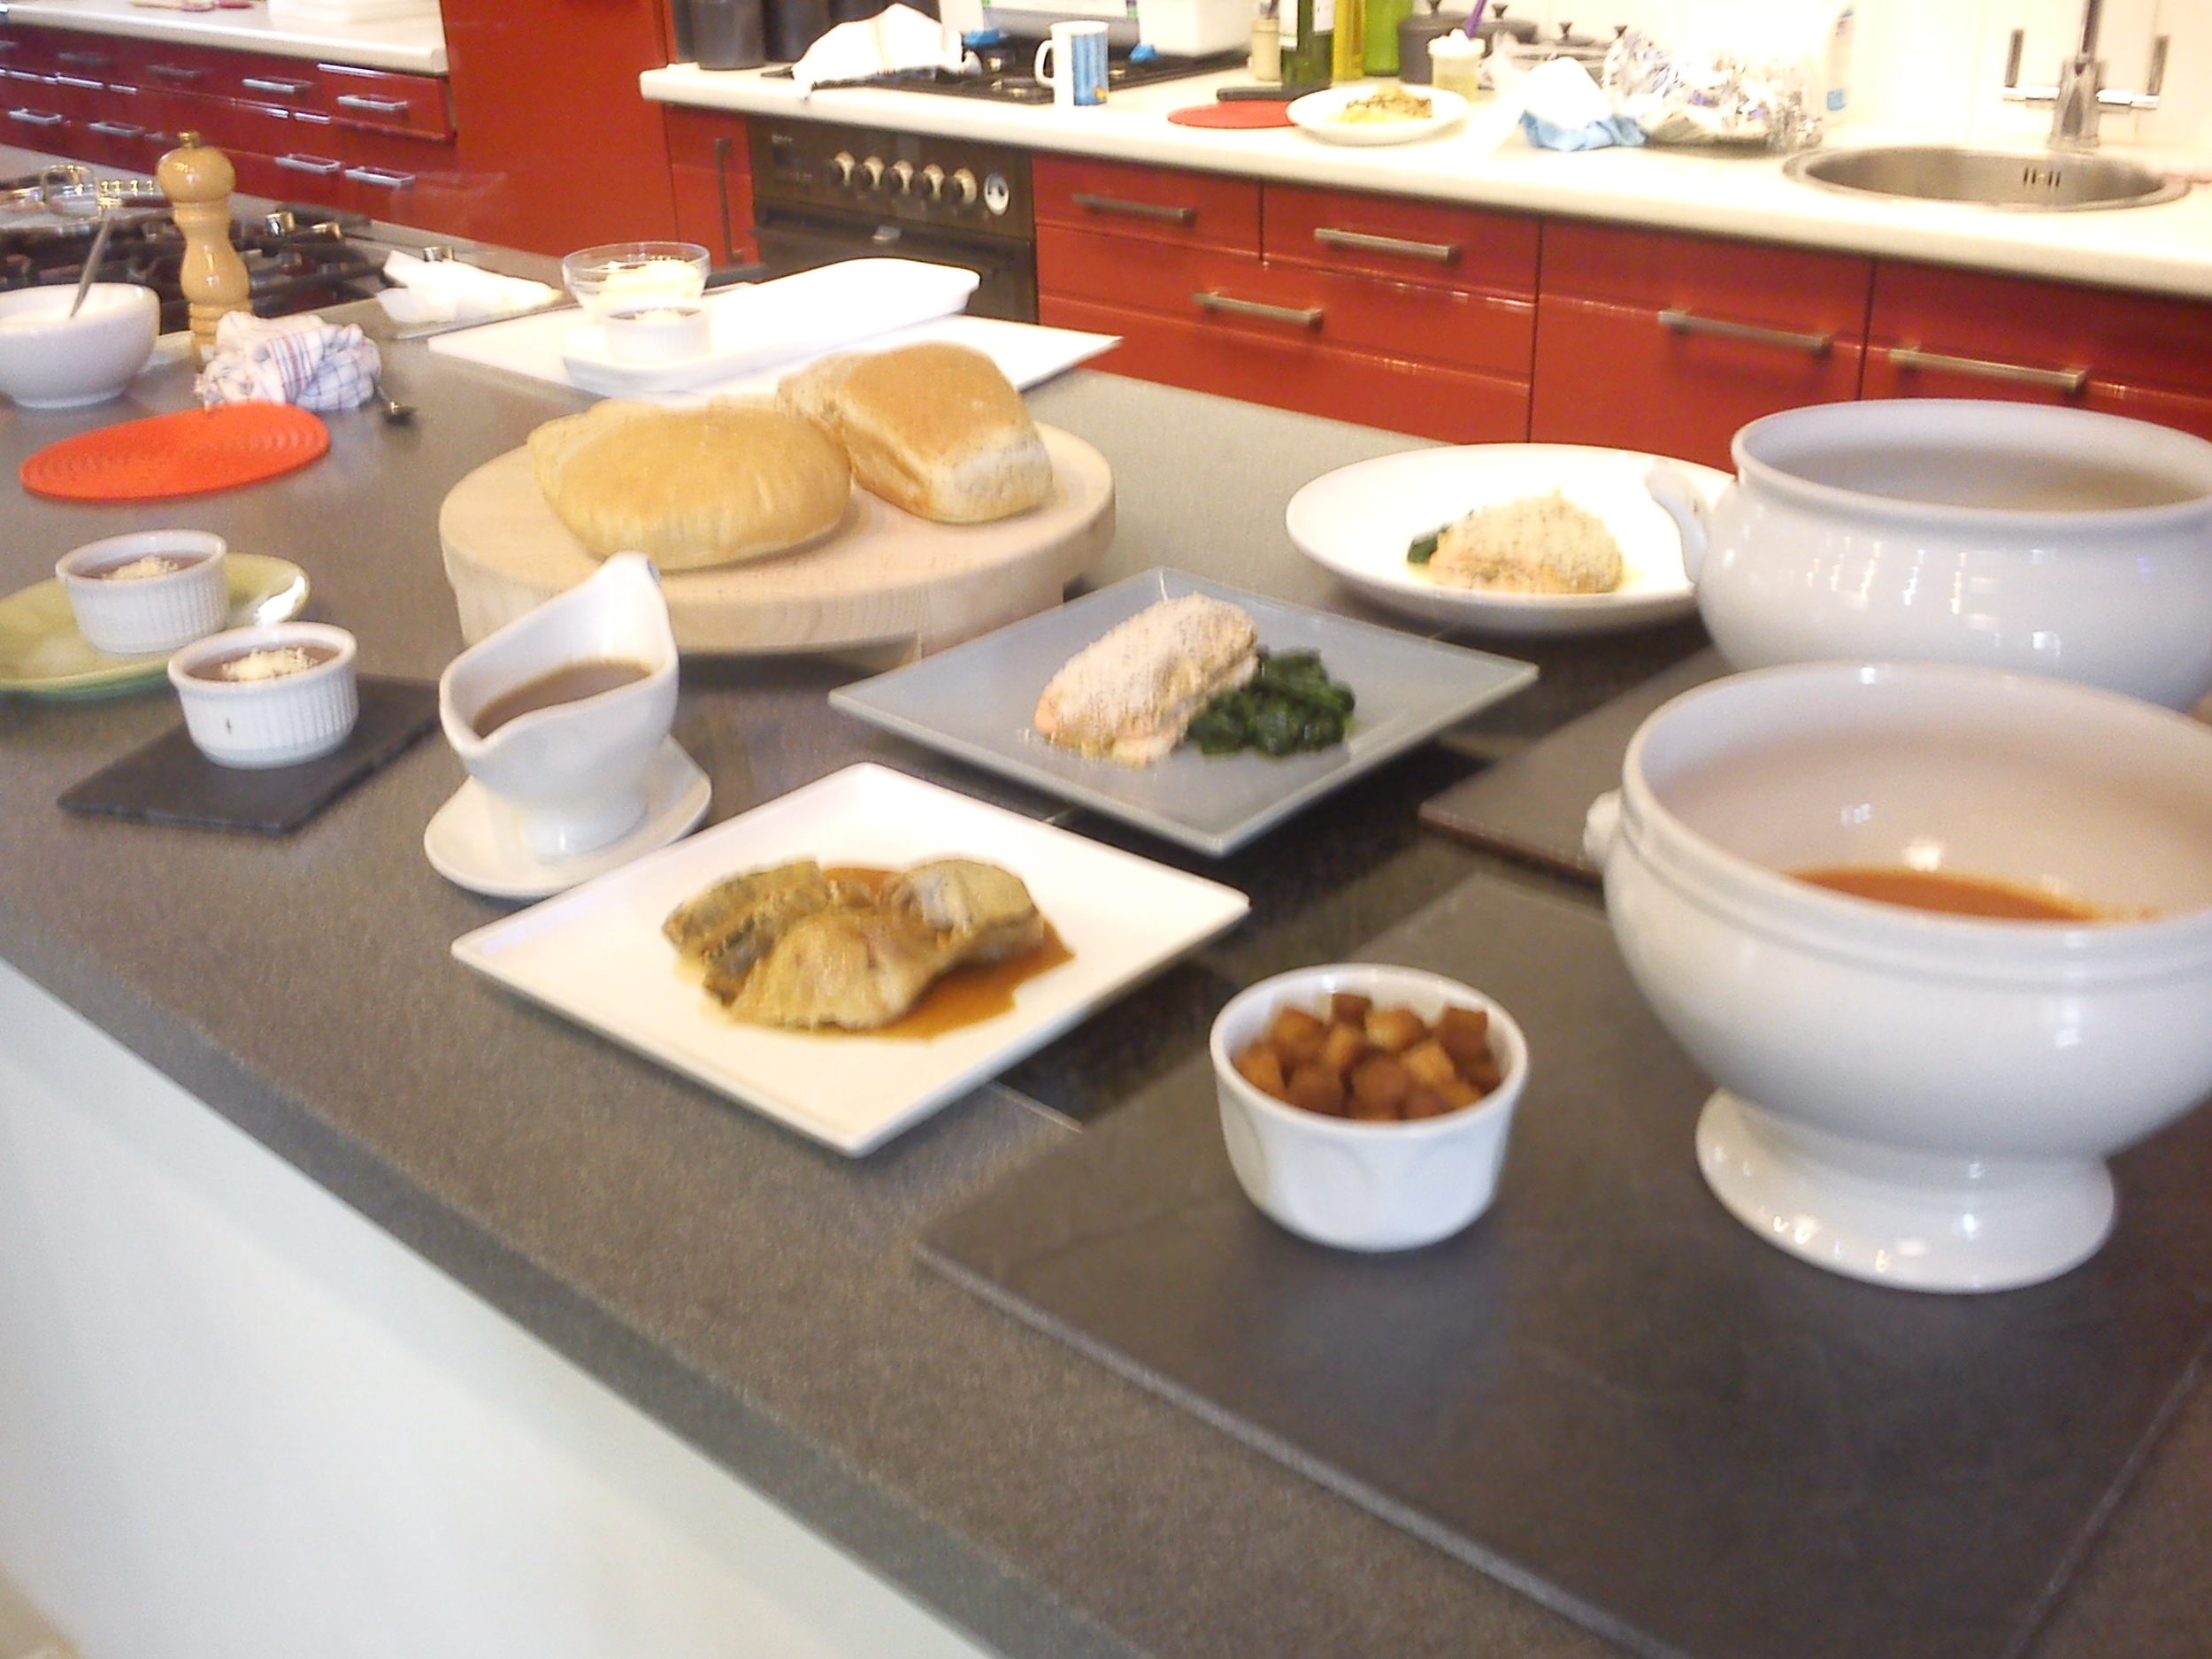 A selection of the food made by Kate in the morning demonstration